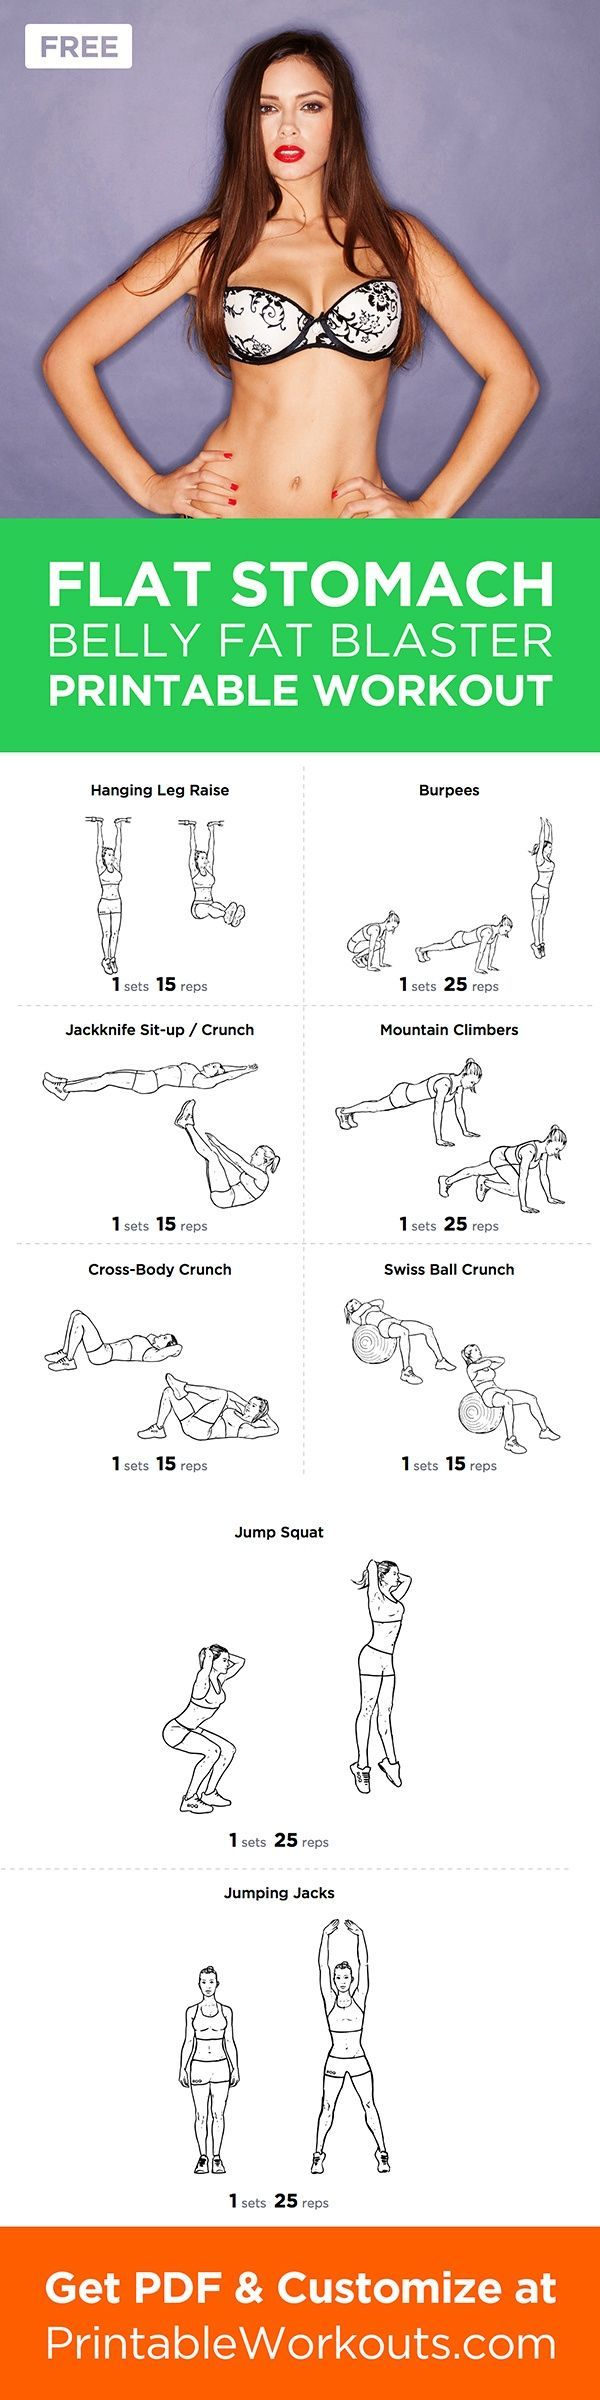 Get that six pack with these abdominal tips and exercises!